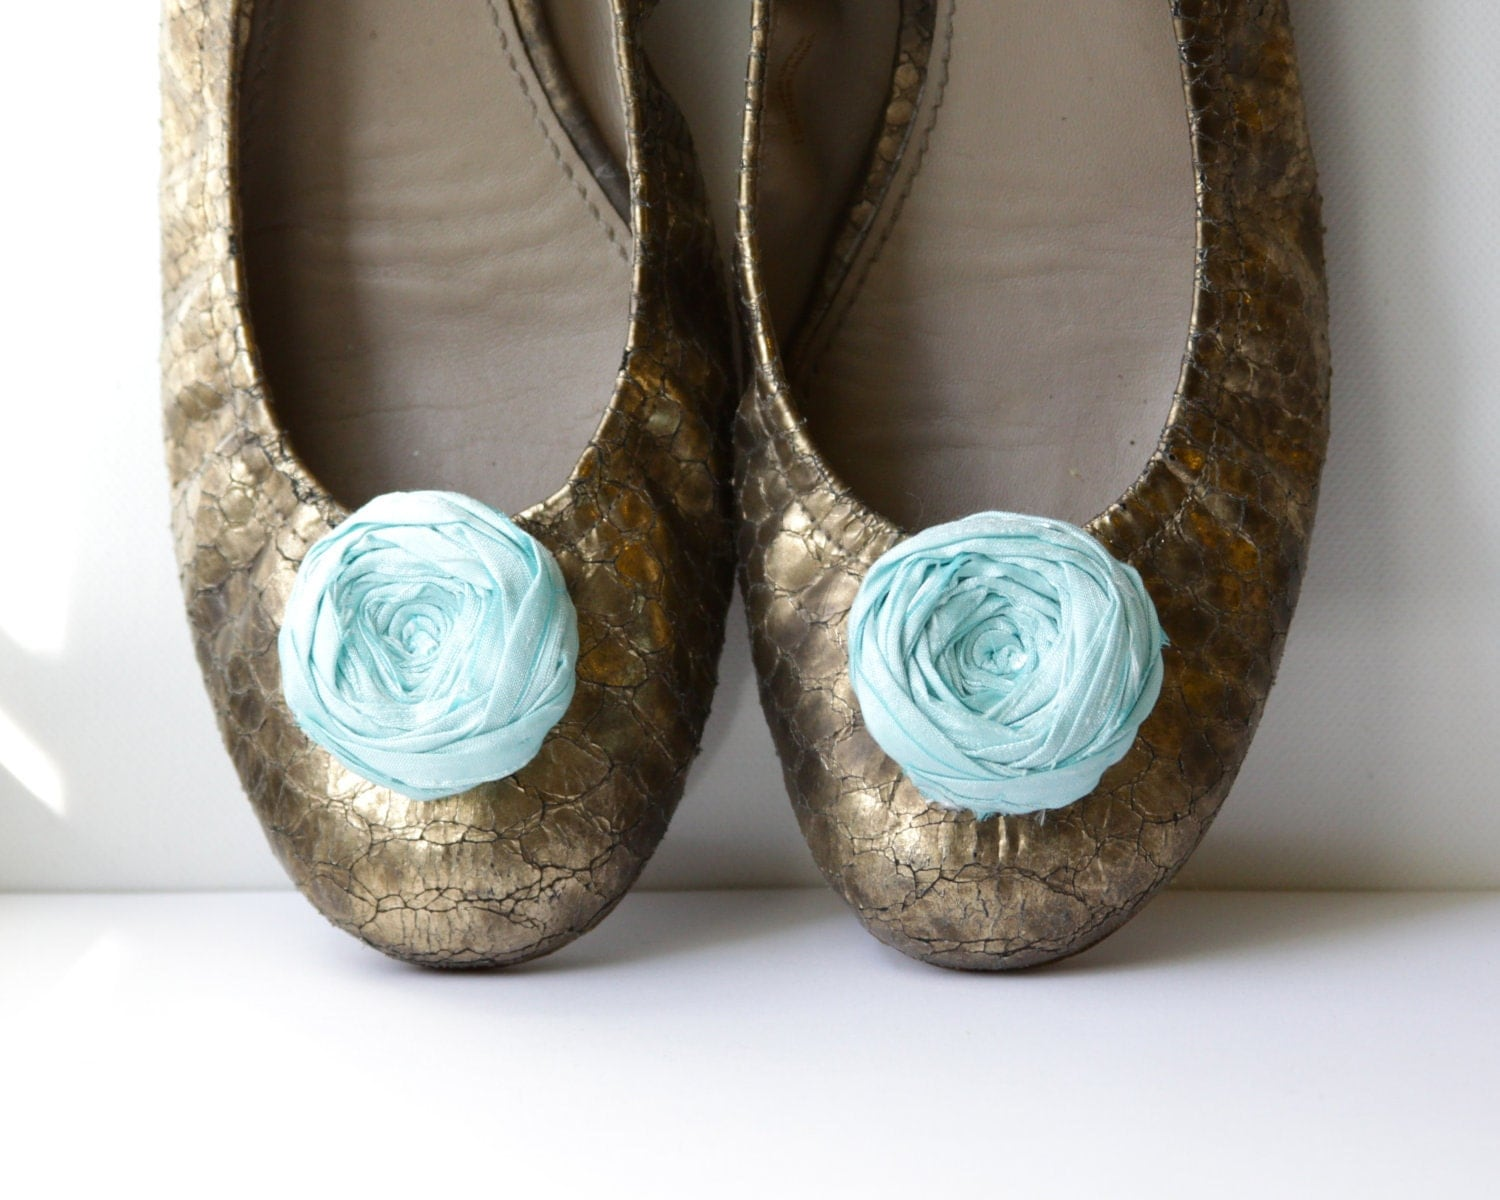 Rosette Shoe Clips Pool Blue Silk Flower Shoe Clips with Bluette Clips Rosette Shoe Clips Wedding or Just Because 1.75 inches